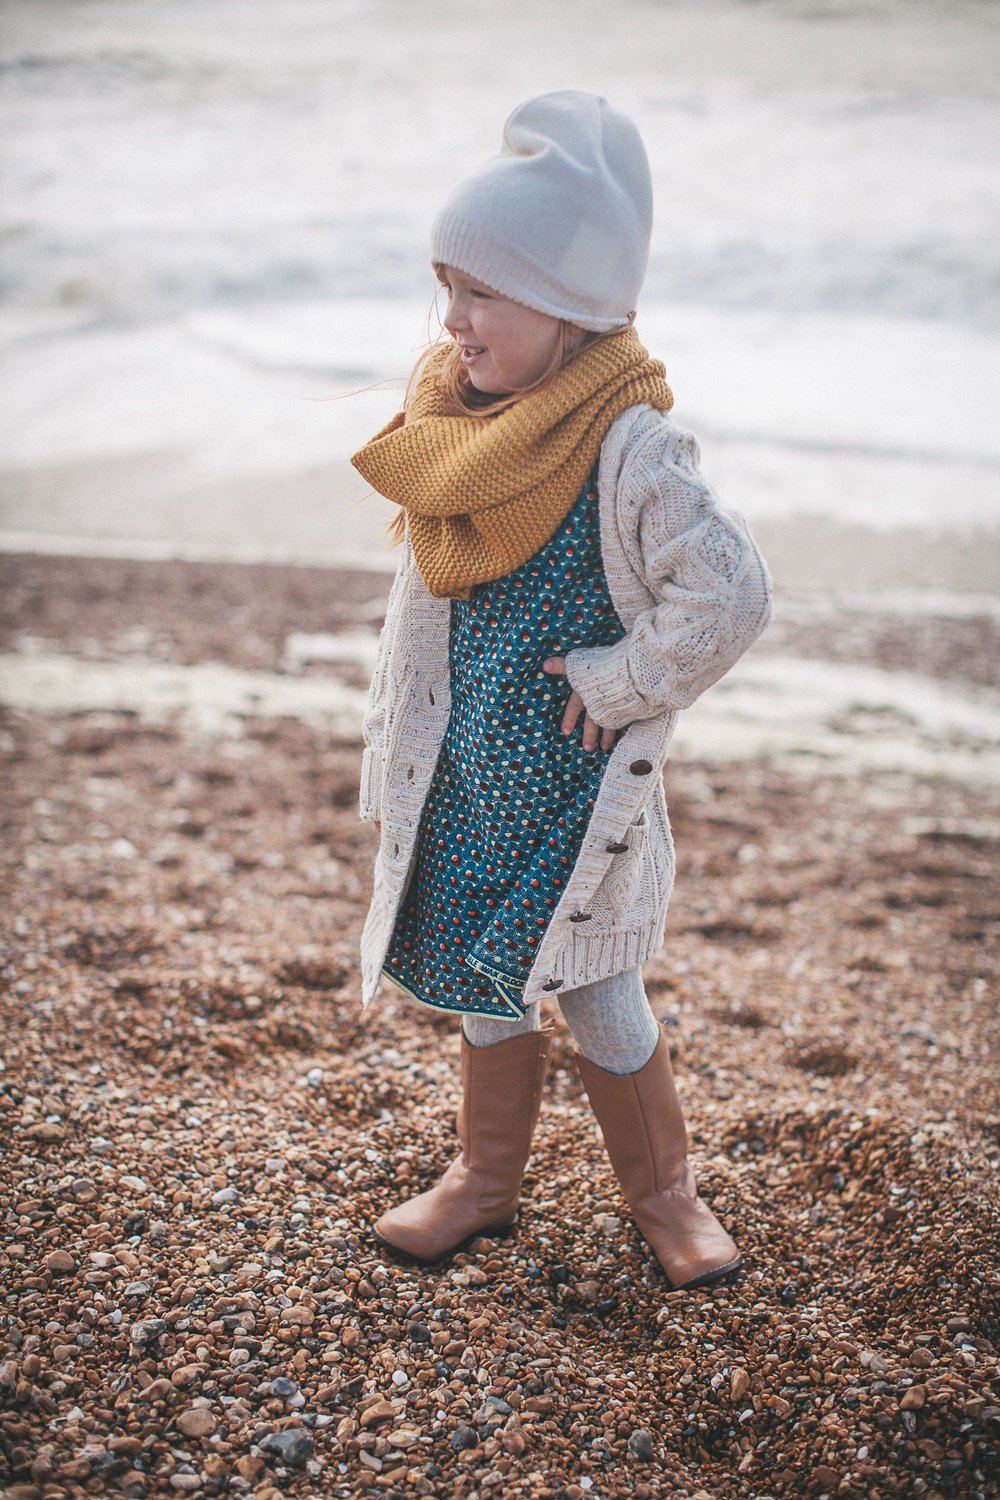 ethical_childrens_clothing_231013_001.jpg